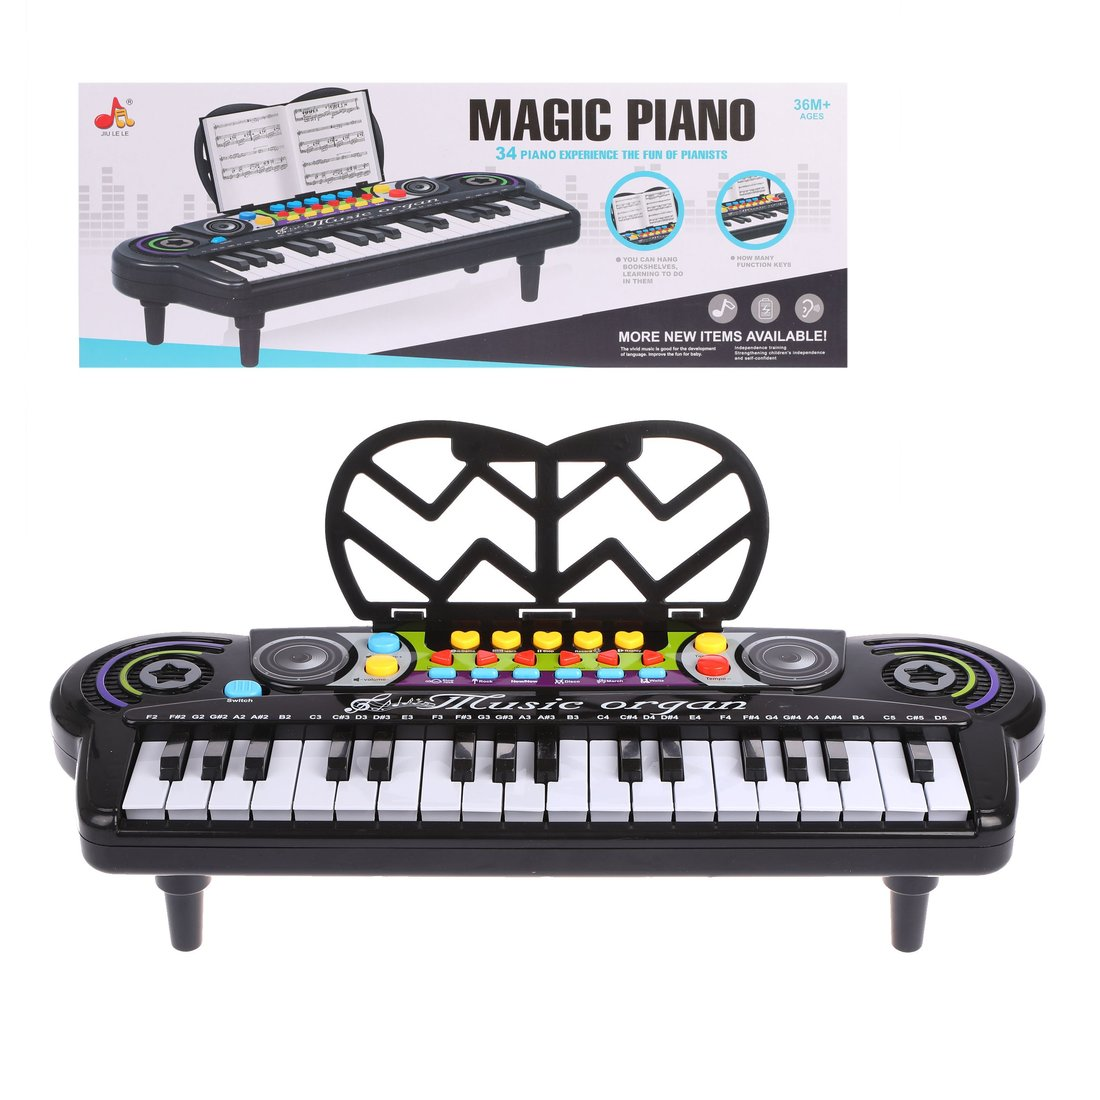 Синтезатор Magic Piano, 34 клавиши, запись, демо, эл.пит. АА*3 не вх.в комплект